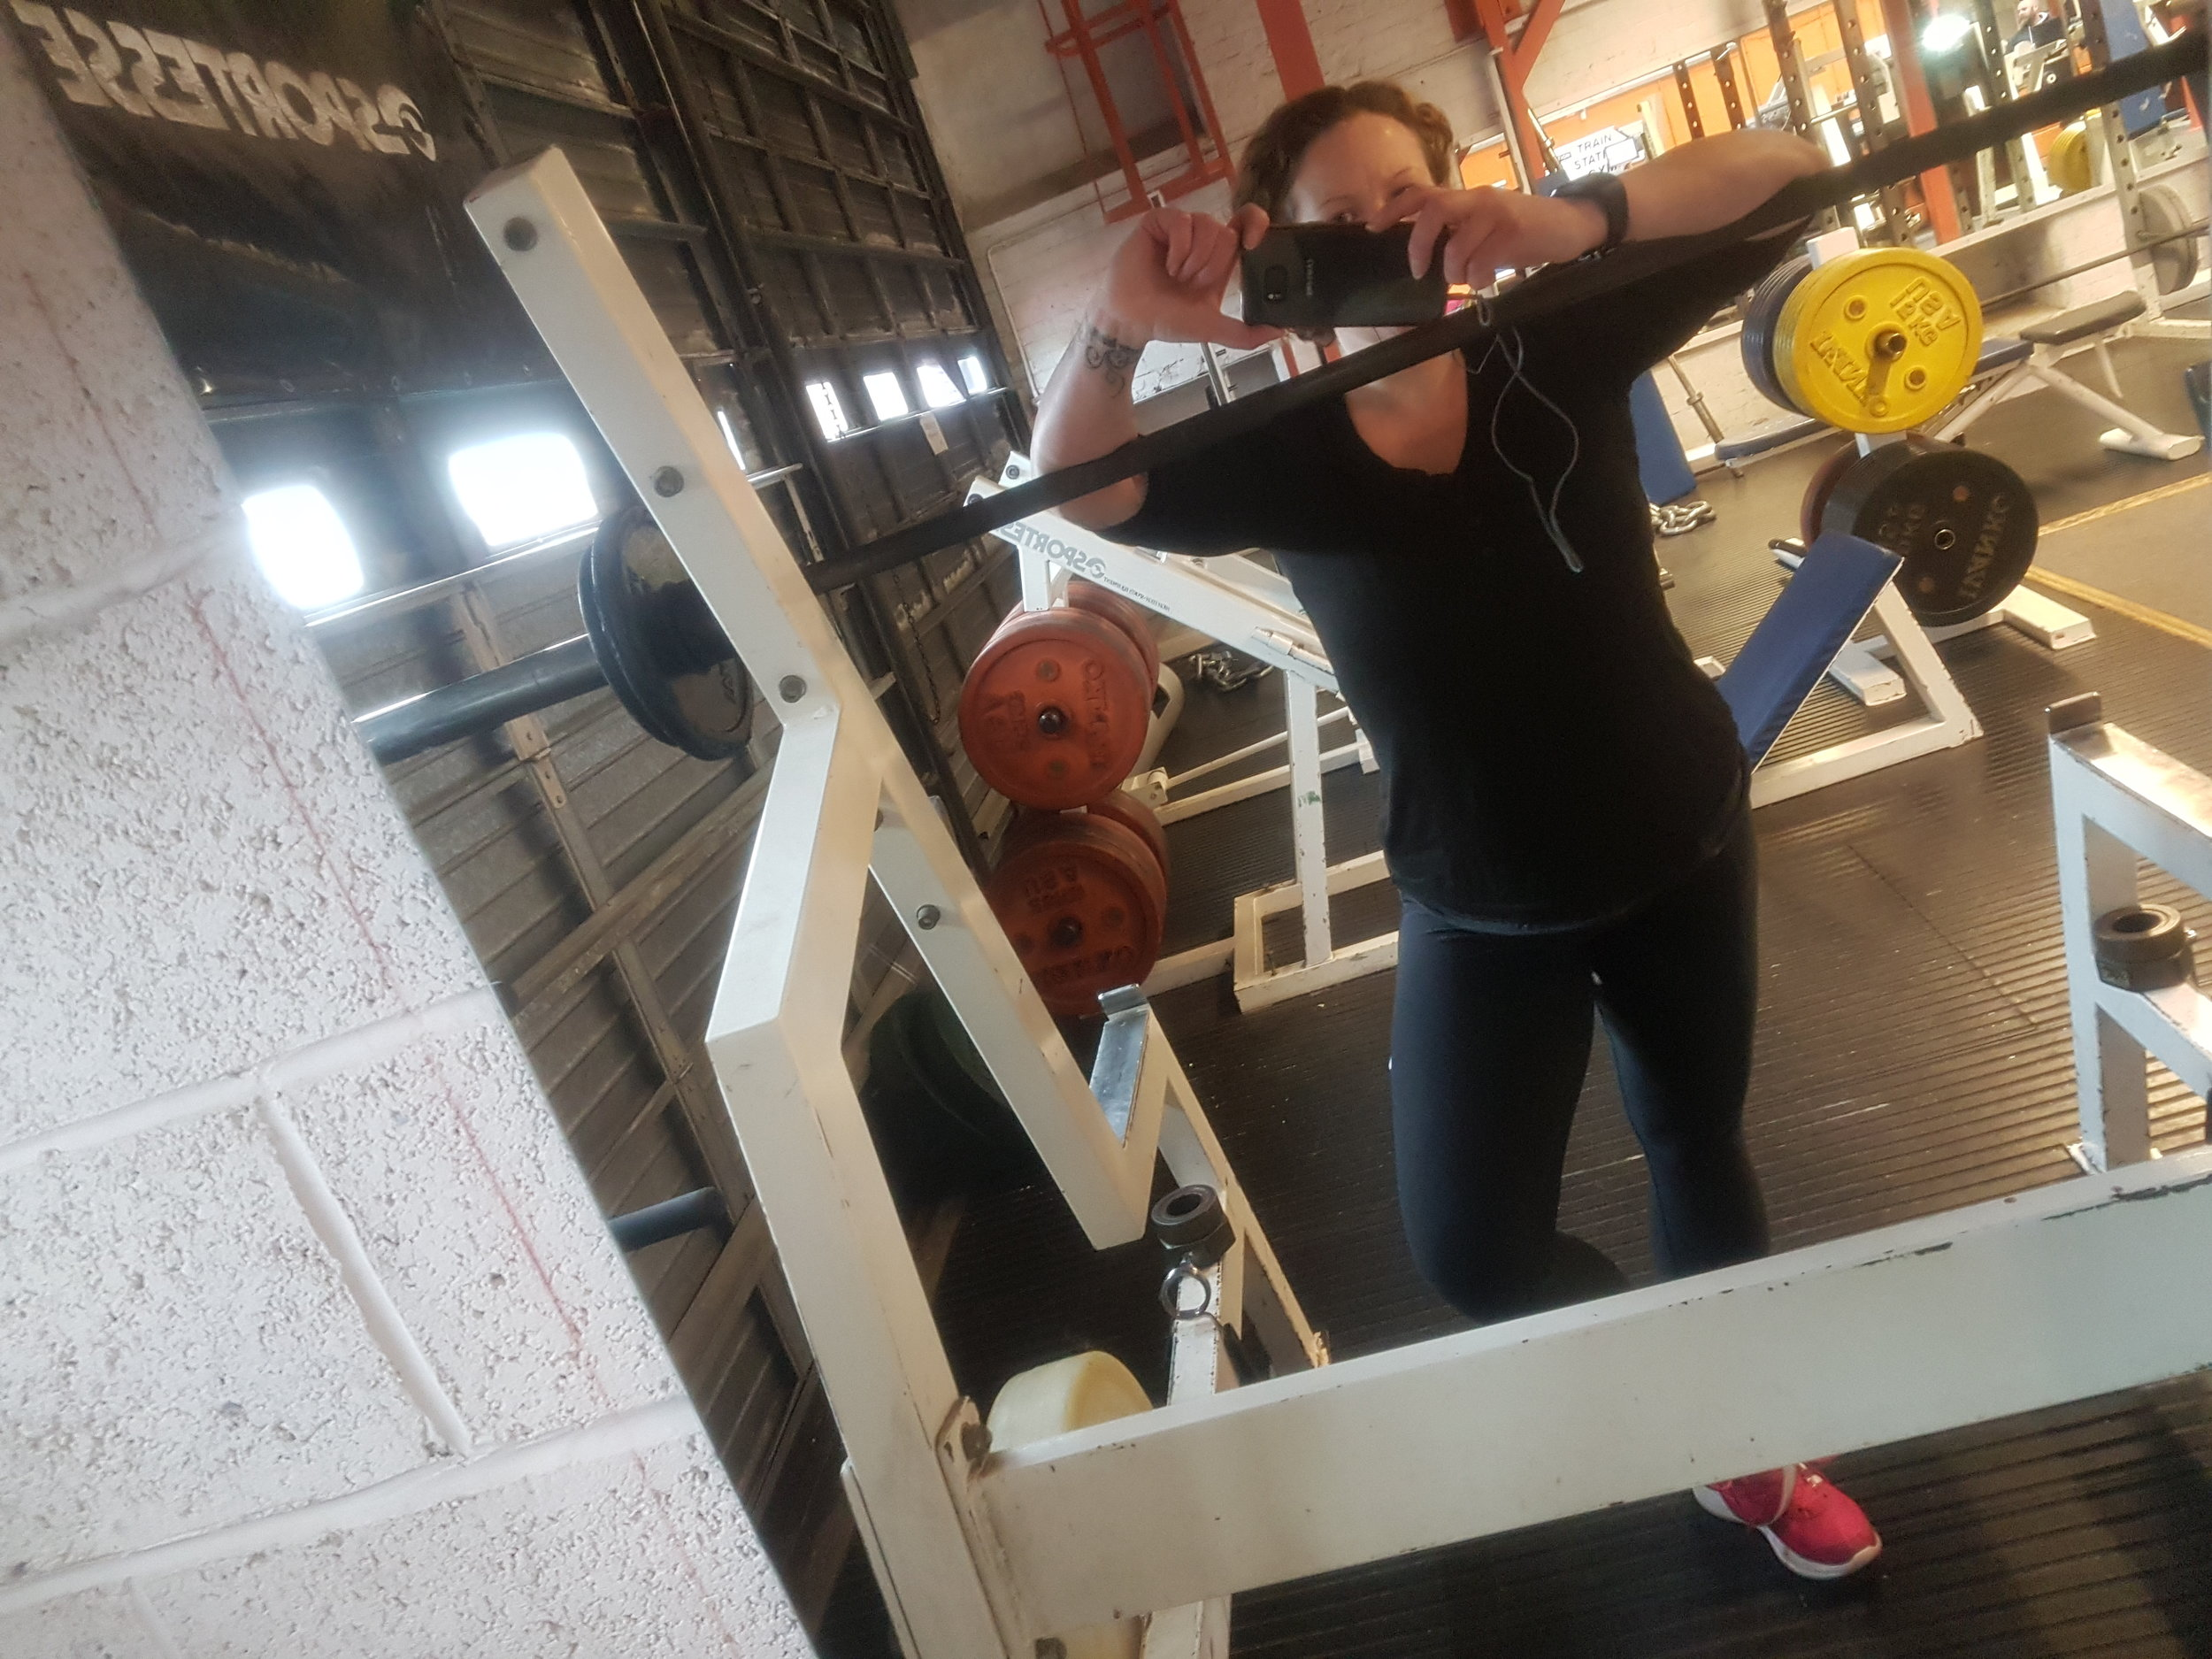 this post is dedicated with thanks to Mark and Ali and all at the Train Station Gym Frome